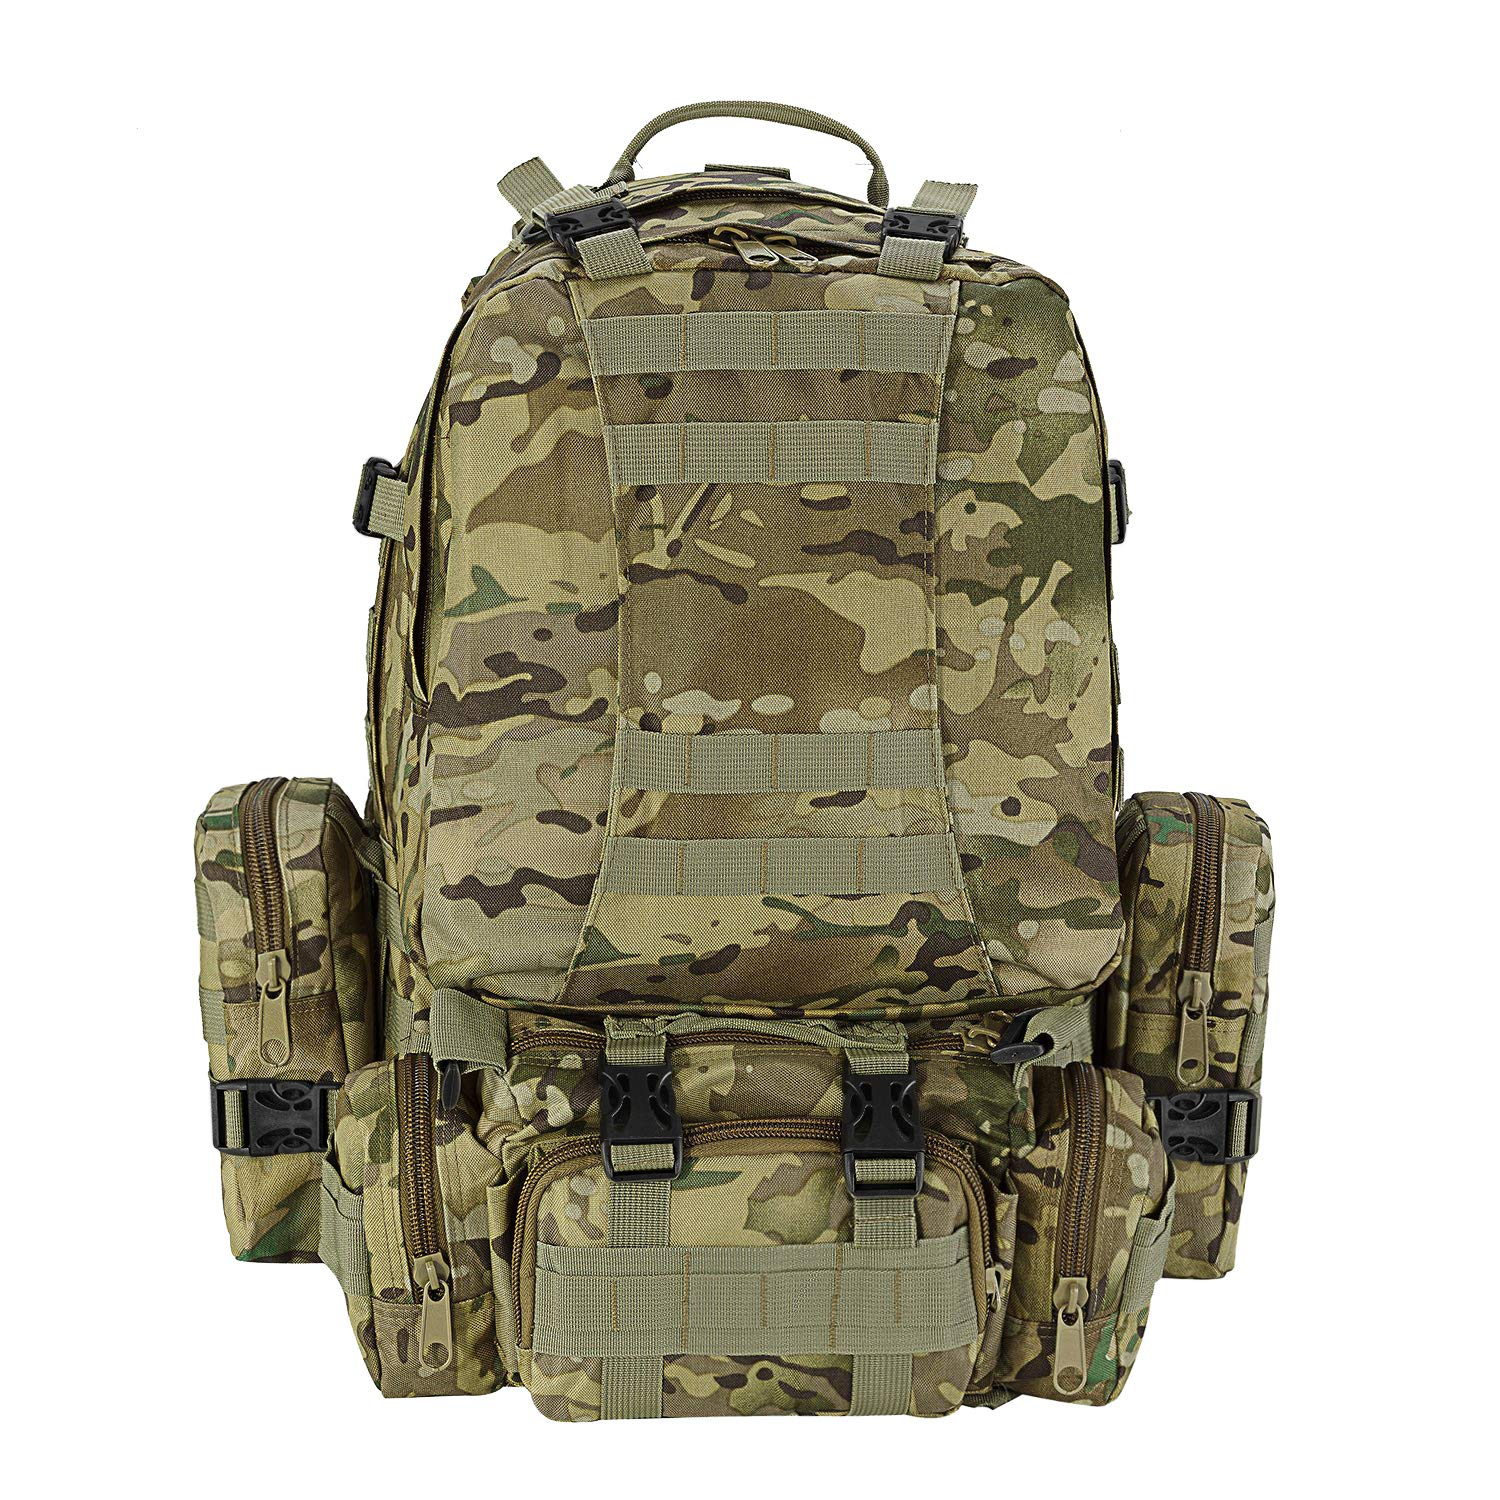 CVLIFE Built-up Military Tactical Rucksack Army Survival Backpack Assault CP by CVLIFE